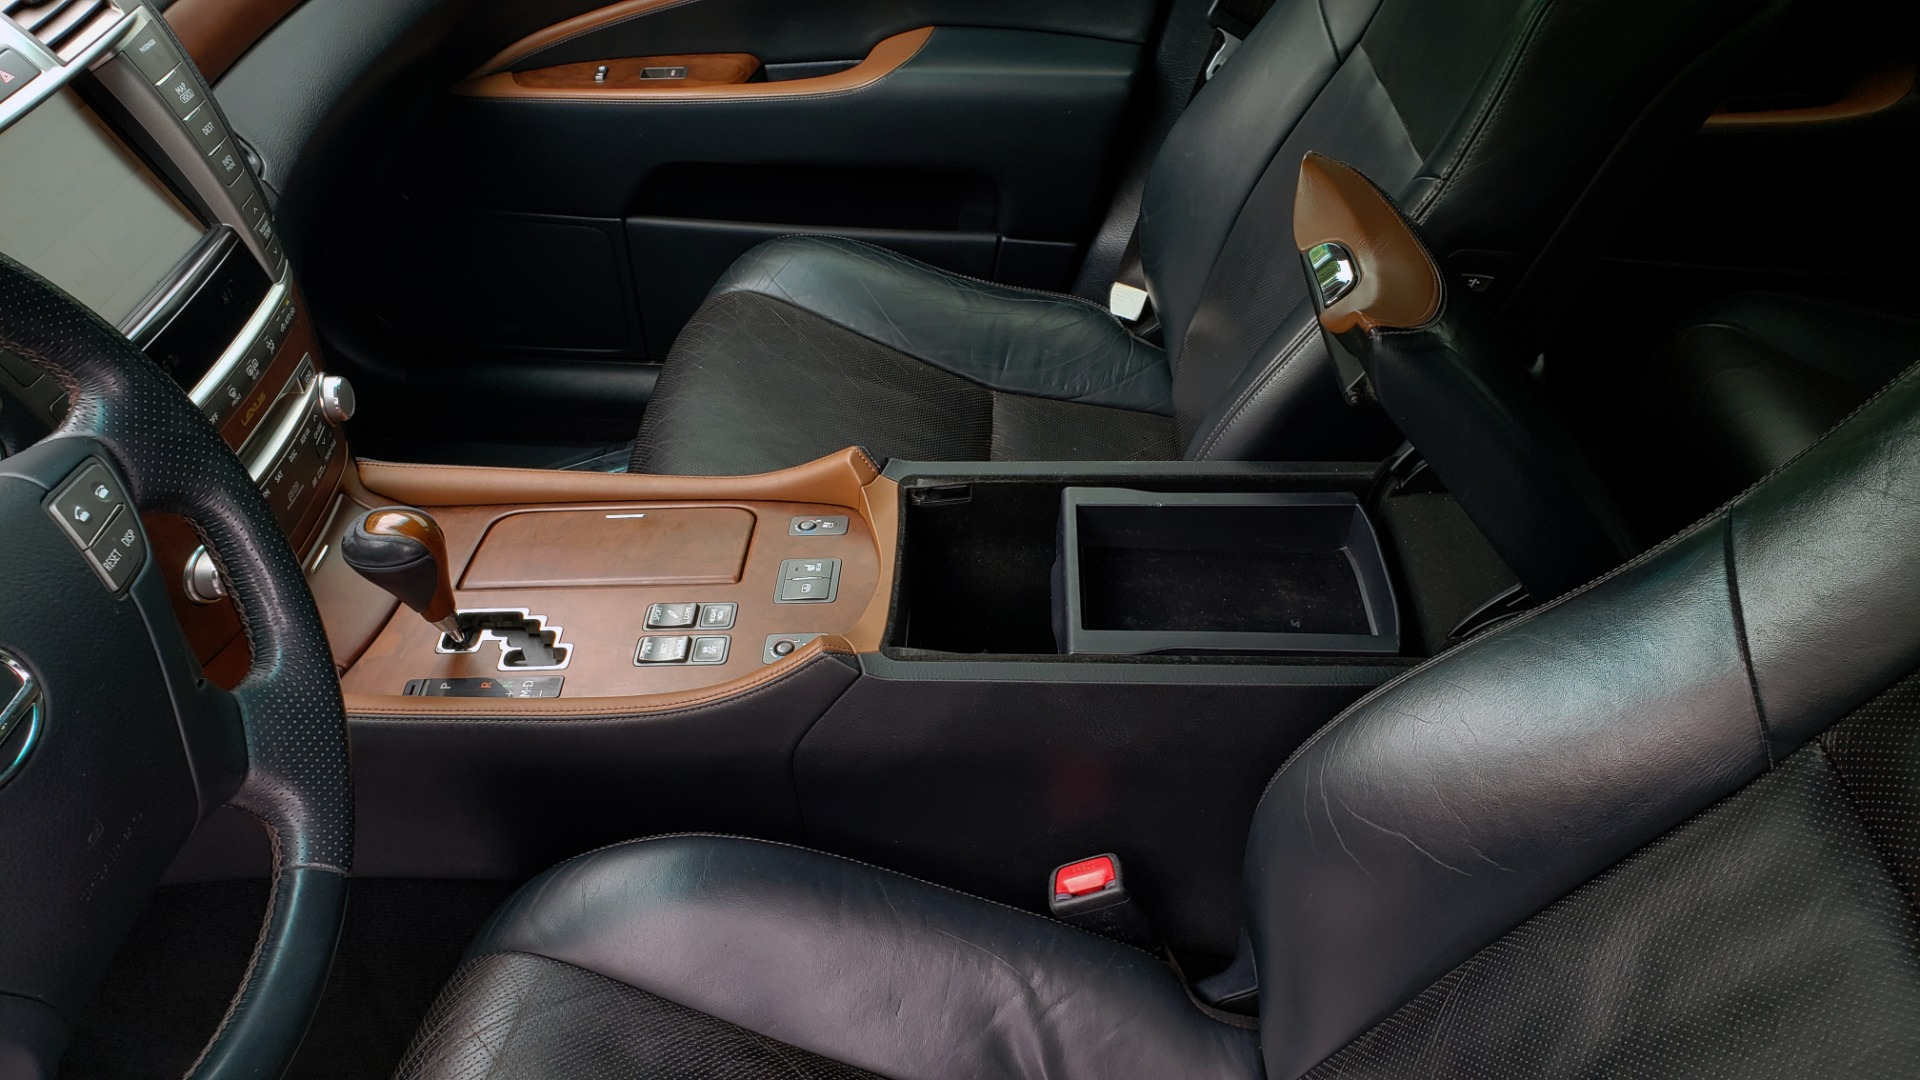 Used 2012 Lexus LS 460 COMFORT W/SPORT / VENT SEATS / NAV / MARK LEV SND / SUNROOF for sale Sold at Formula Imports in Charlotte NC 28227 55